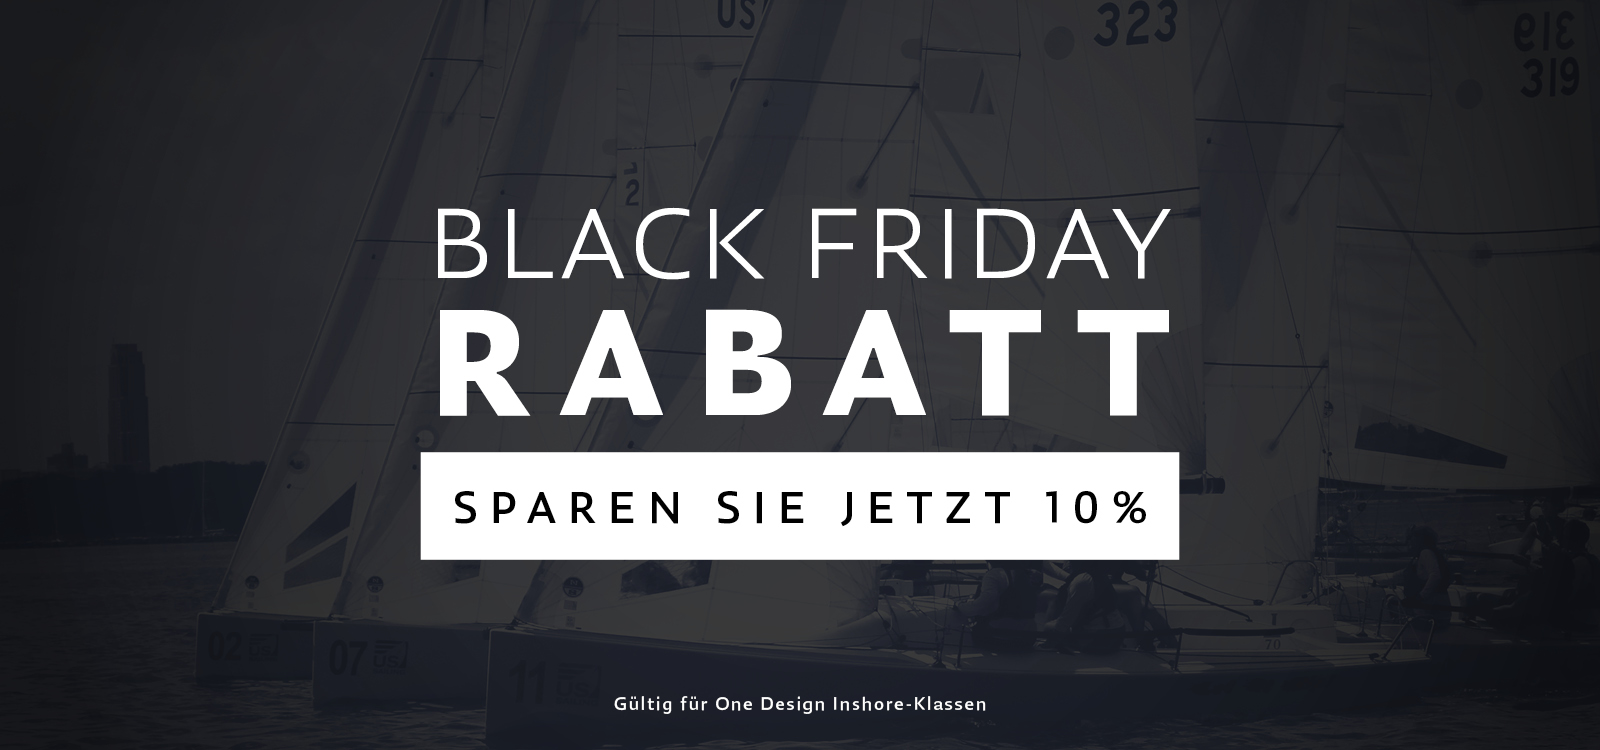 Black Friday Rabatt Black Friday Rabatt North Sails